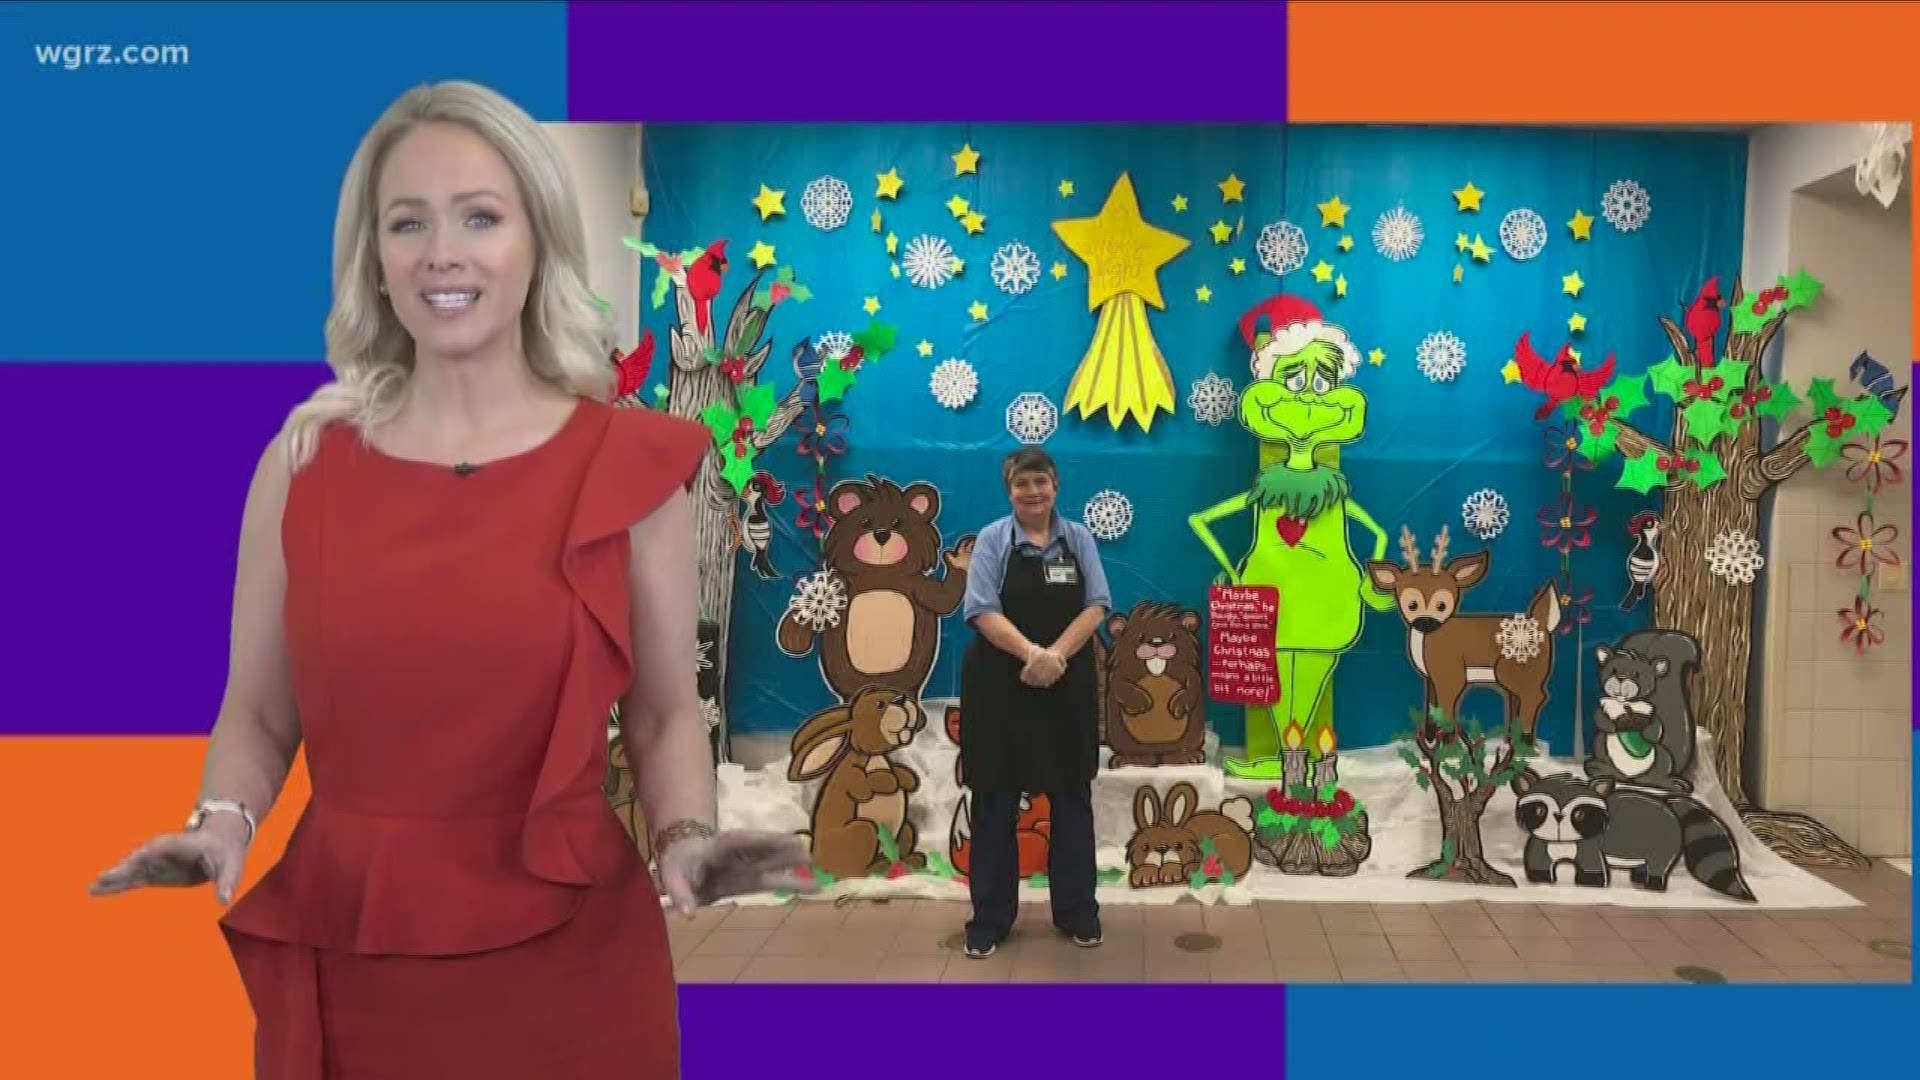 Meet Linda Kibler: The 'viral lunch lady' known for her life-size, handmade holiday scenes ...